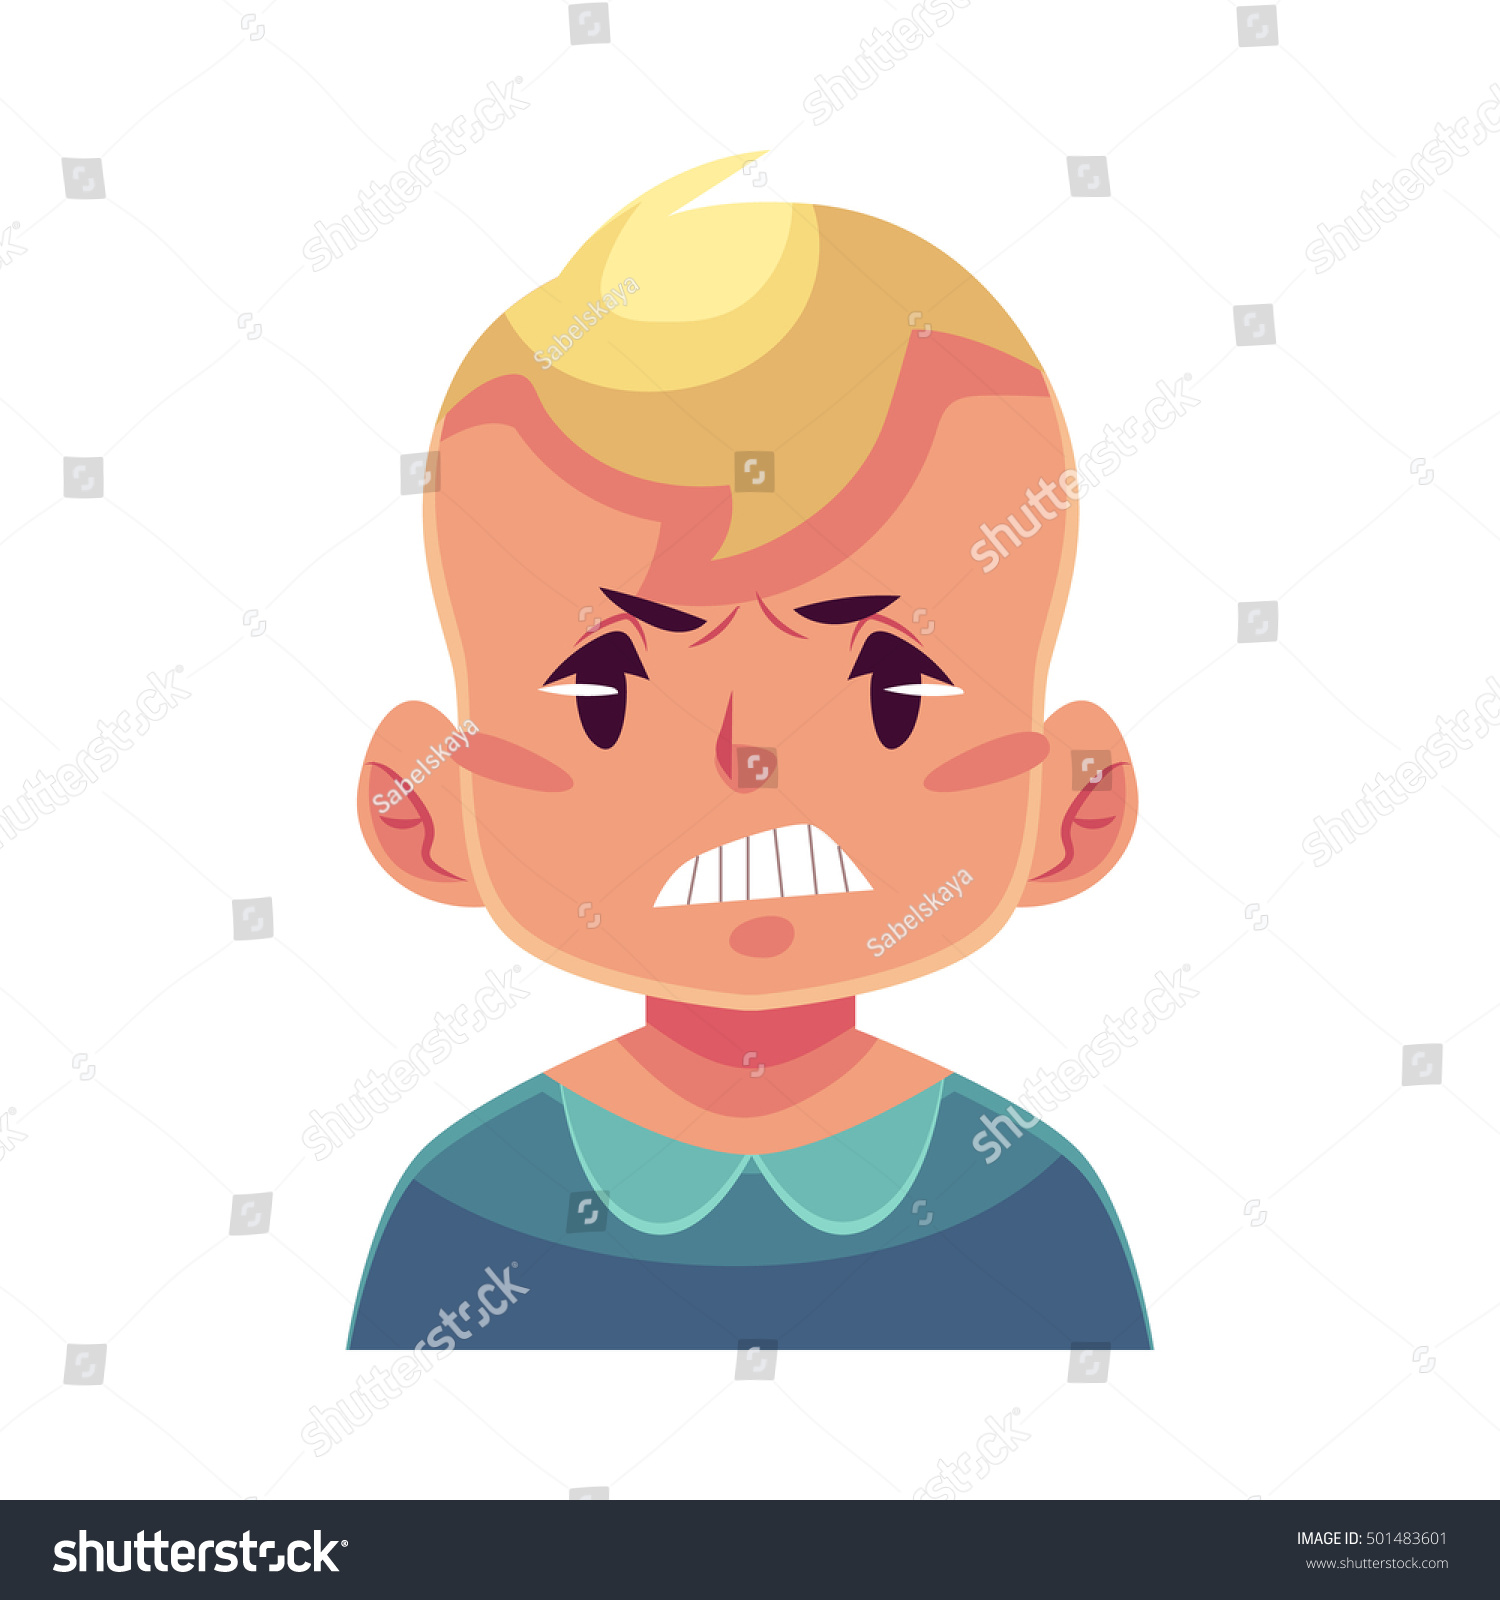 Little Boy Face Angry Facial Expression Stock Vector ...